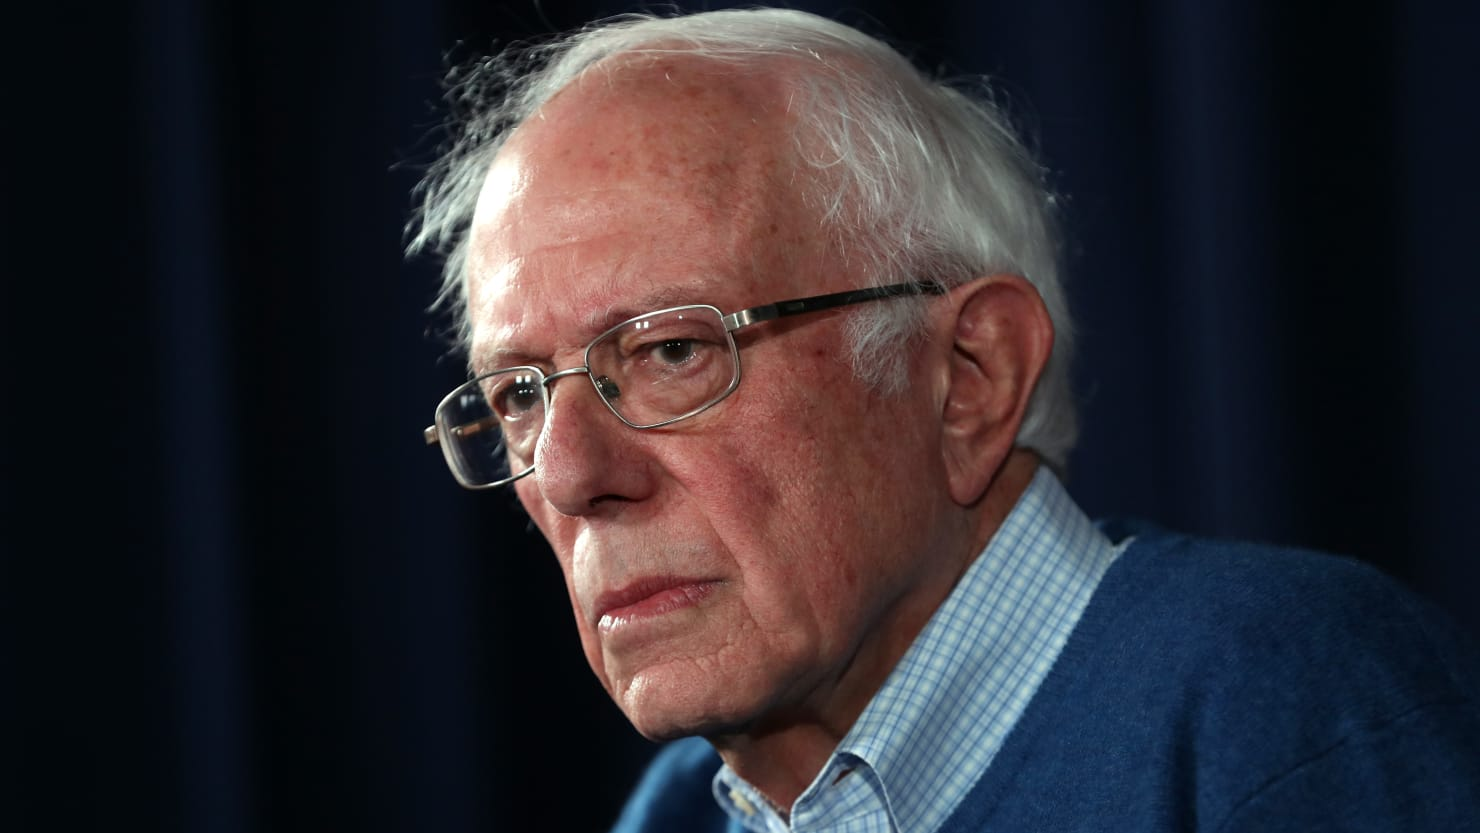 Sanders on Top in Latest New Hampshire Poll, Biden Lags in Third